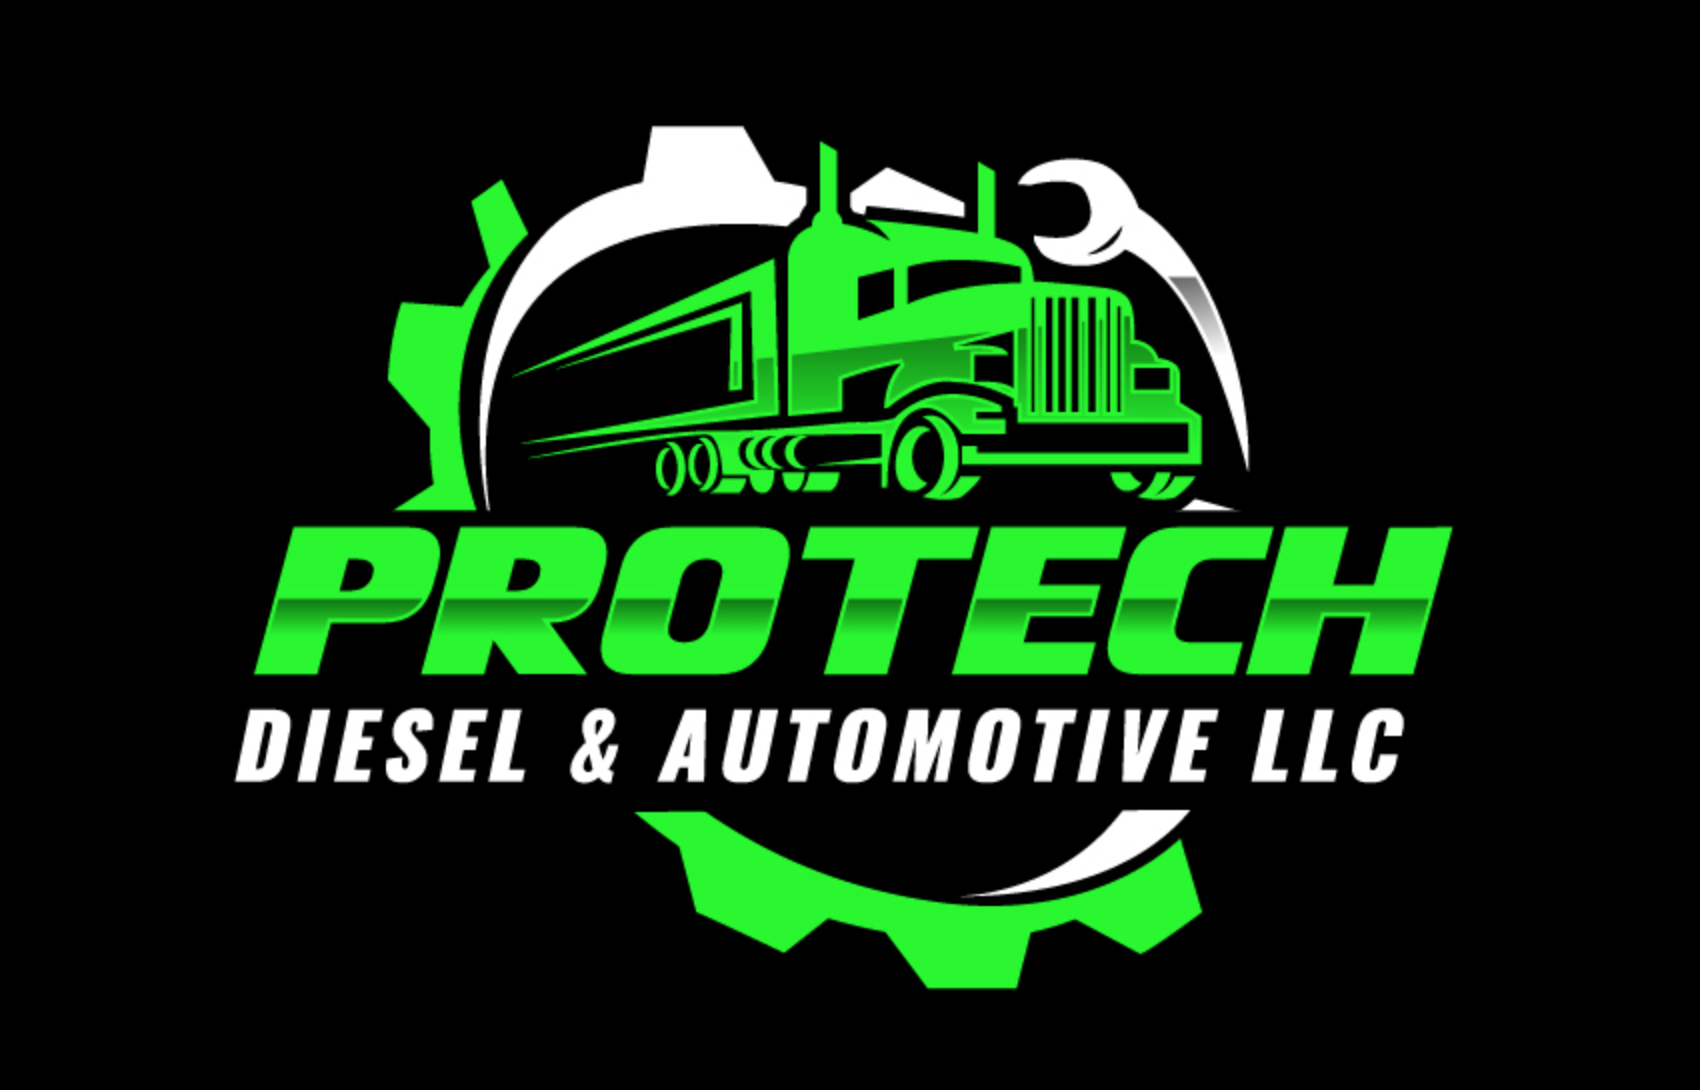 Protech Diesel and Automotive